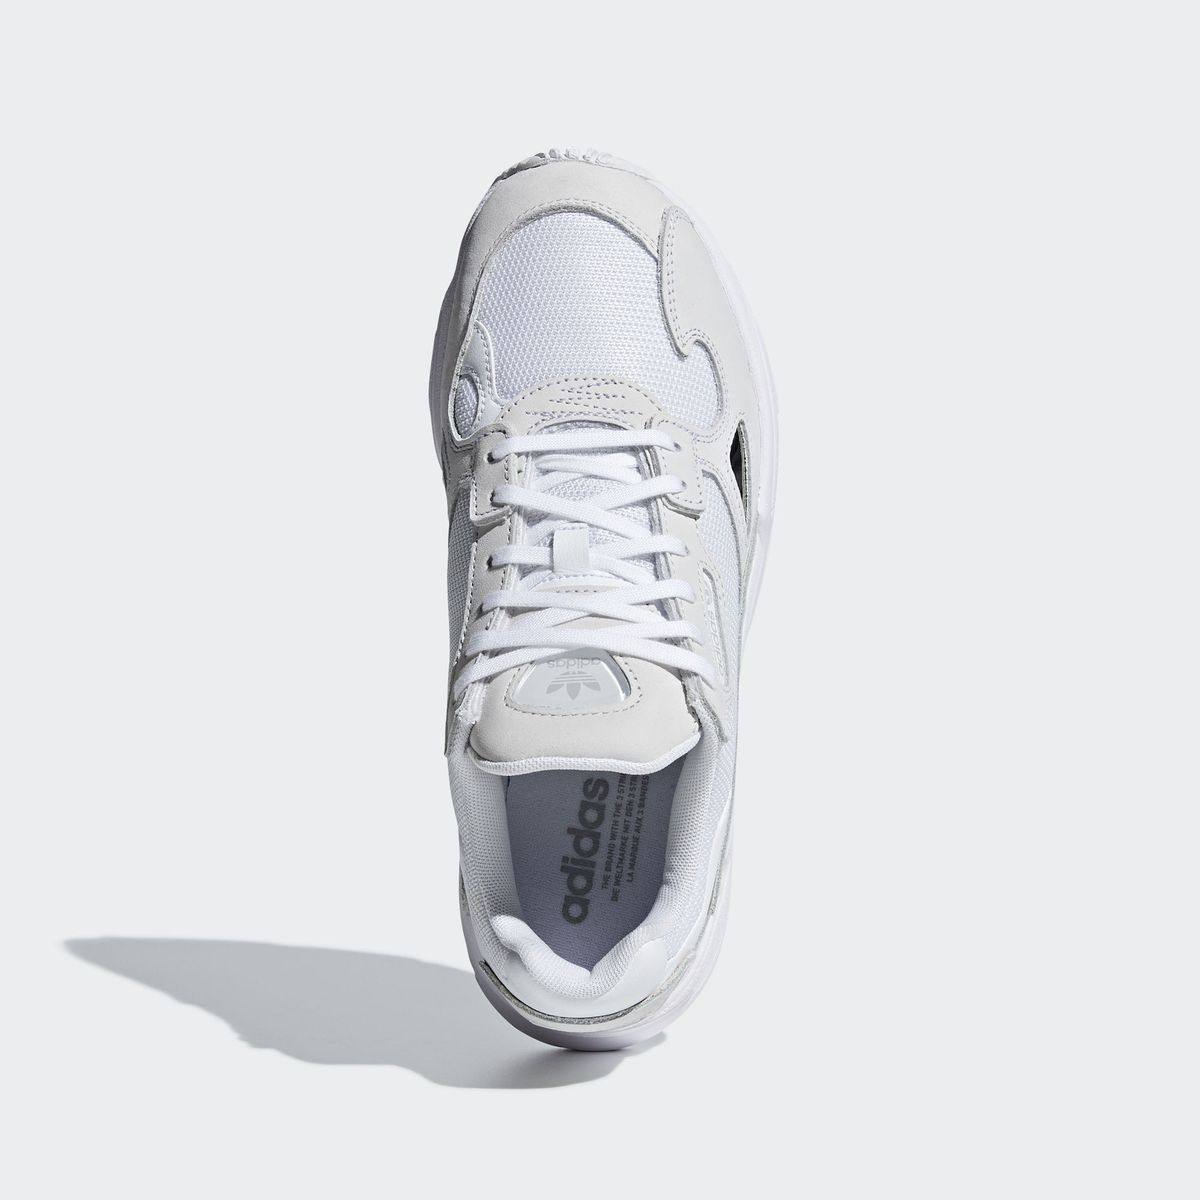 Baskets Falcon Taille : 36;37 13;38;39 13;40;41 13;36 2